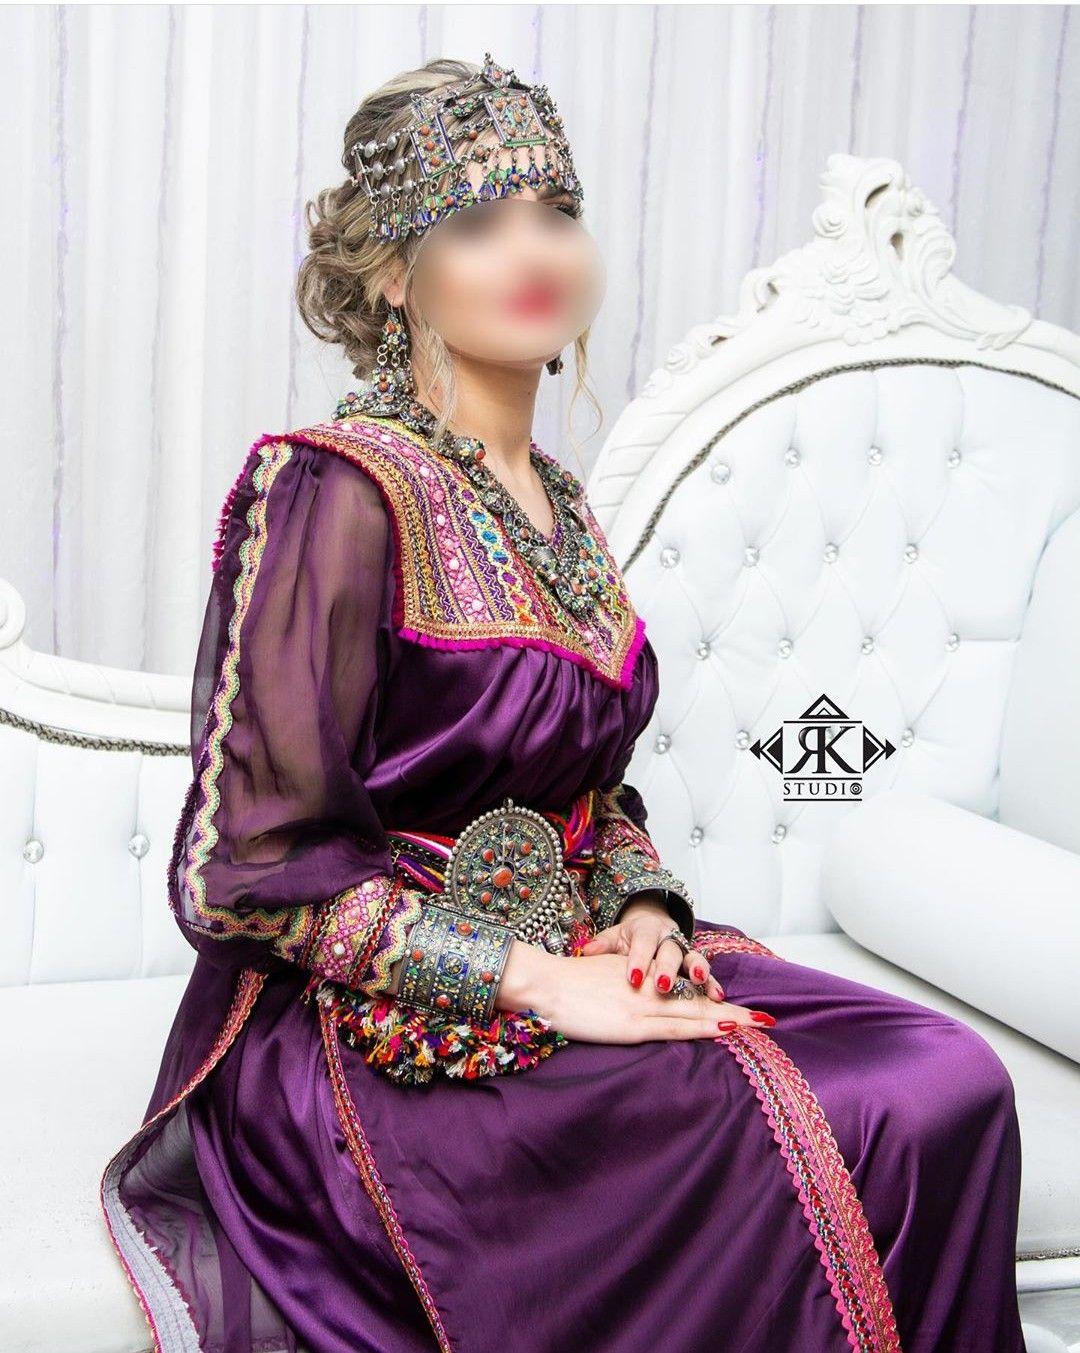 Pin By Nadjet On Robe Kabyle Traditional Outfits Dresses Algerian Clothing